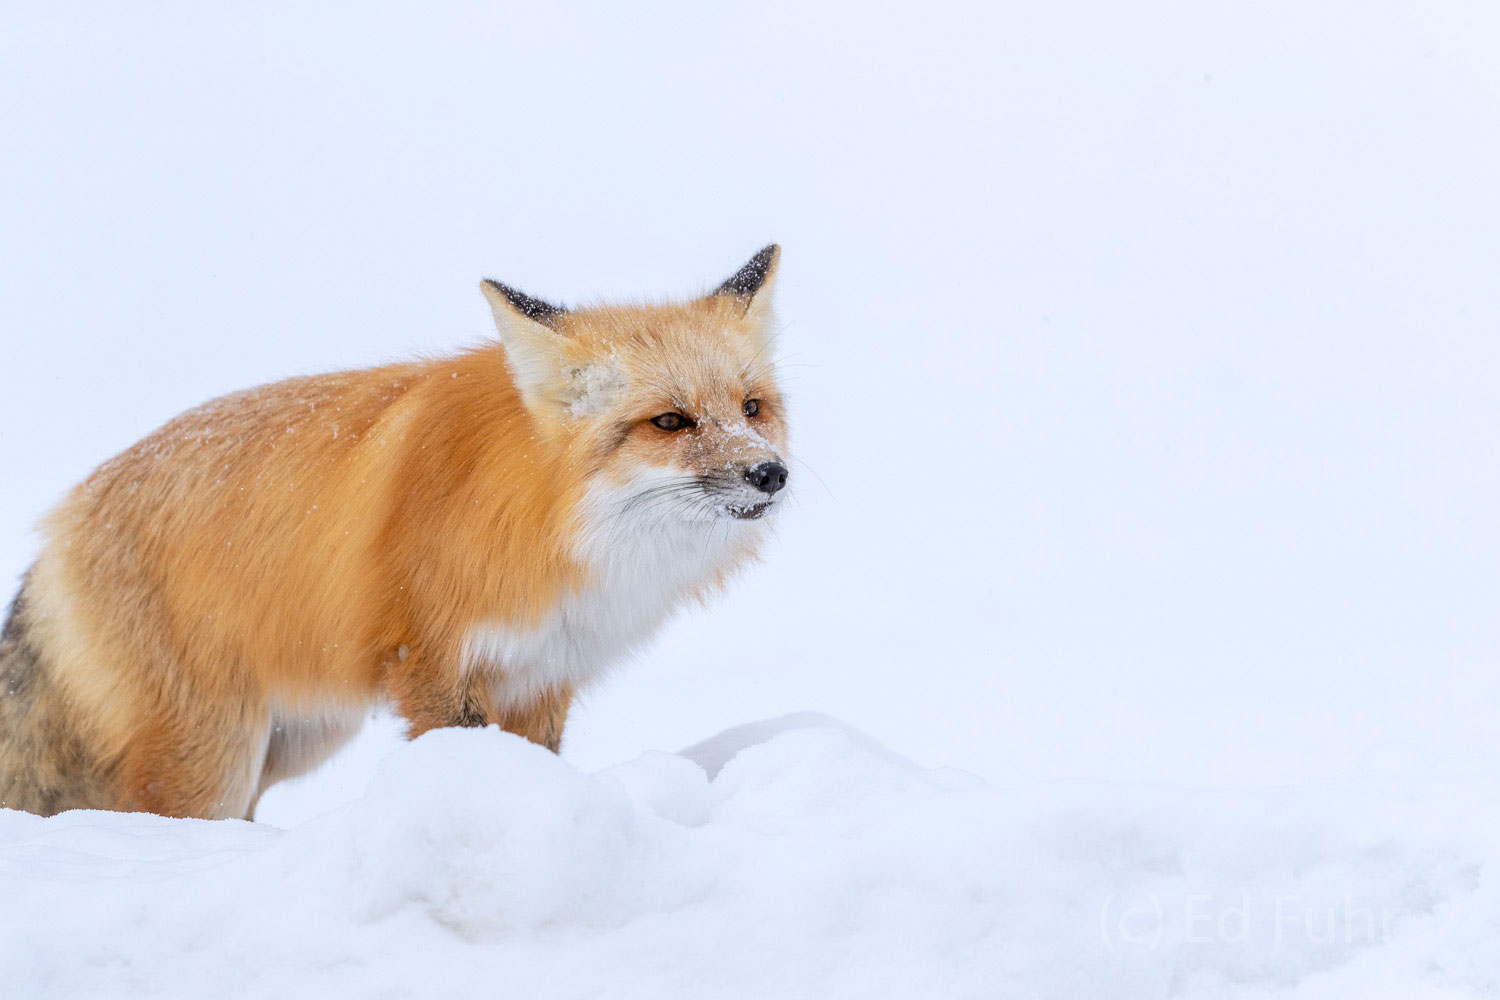 The winds have picked up and it is beginning to snow.   This fox knows it is time to find a secure place in which to bed down...